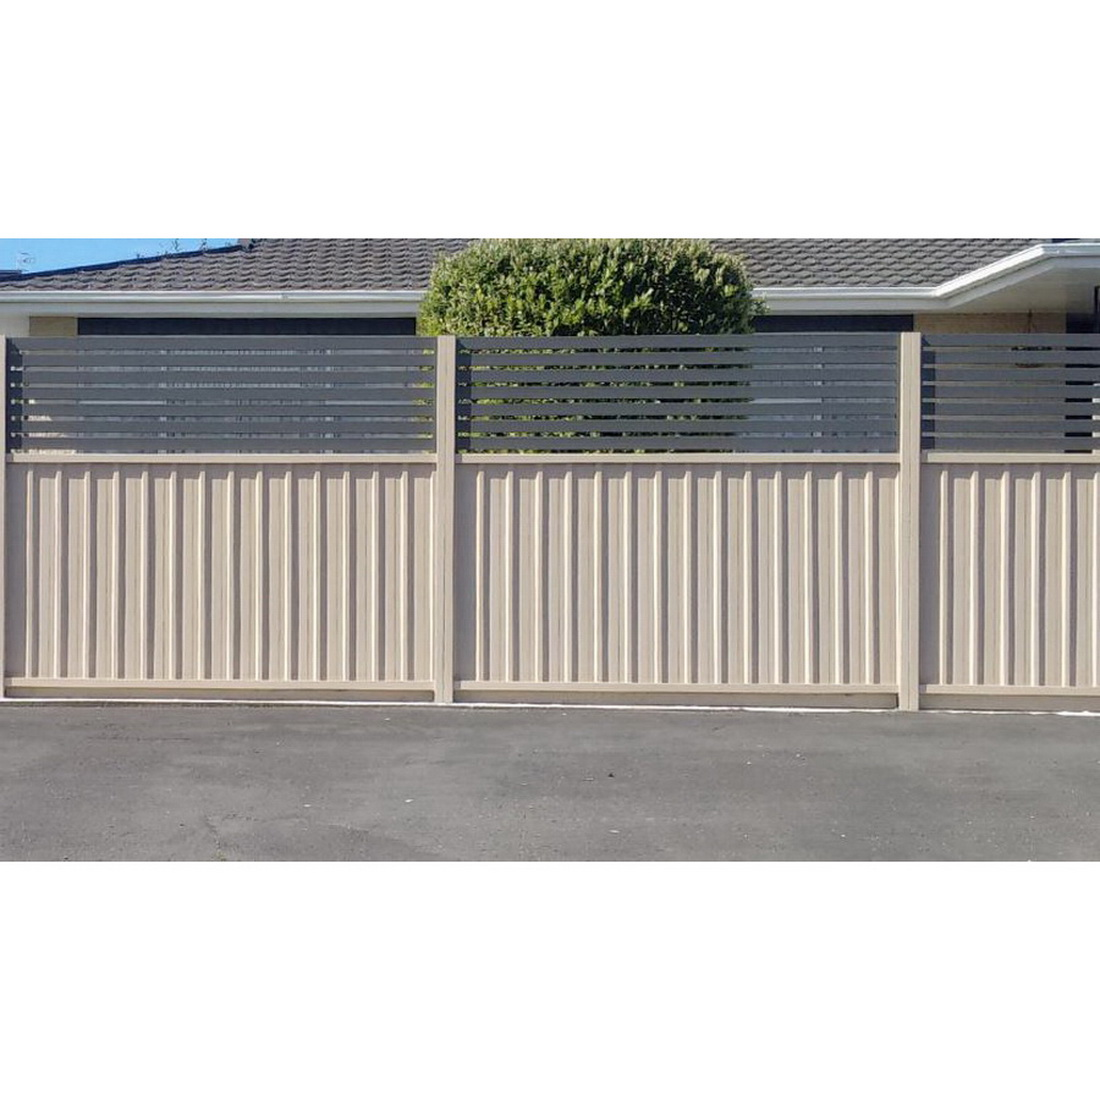 Borderline 1.2/6 Fence Panel 1800 x 2300mm Gull Grey